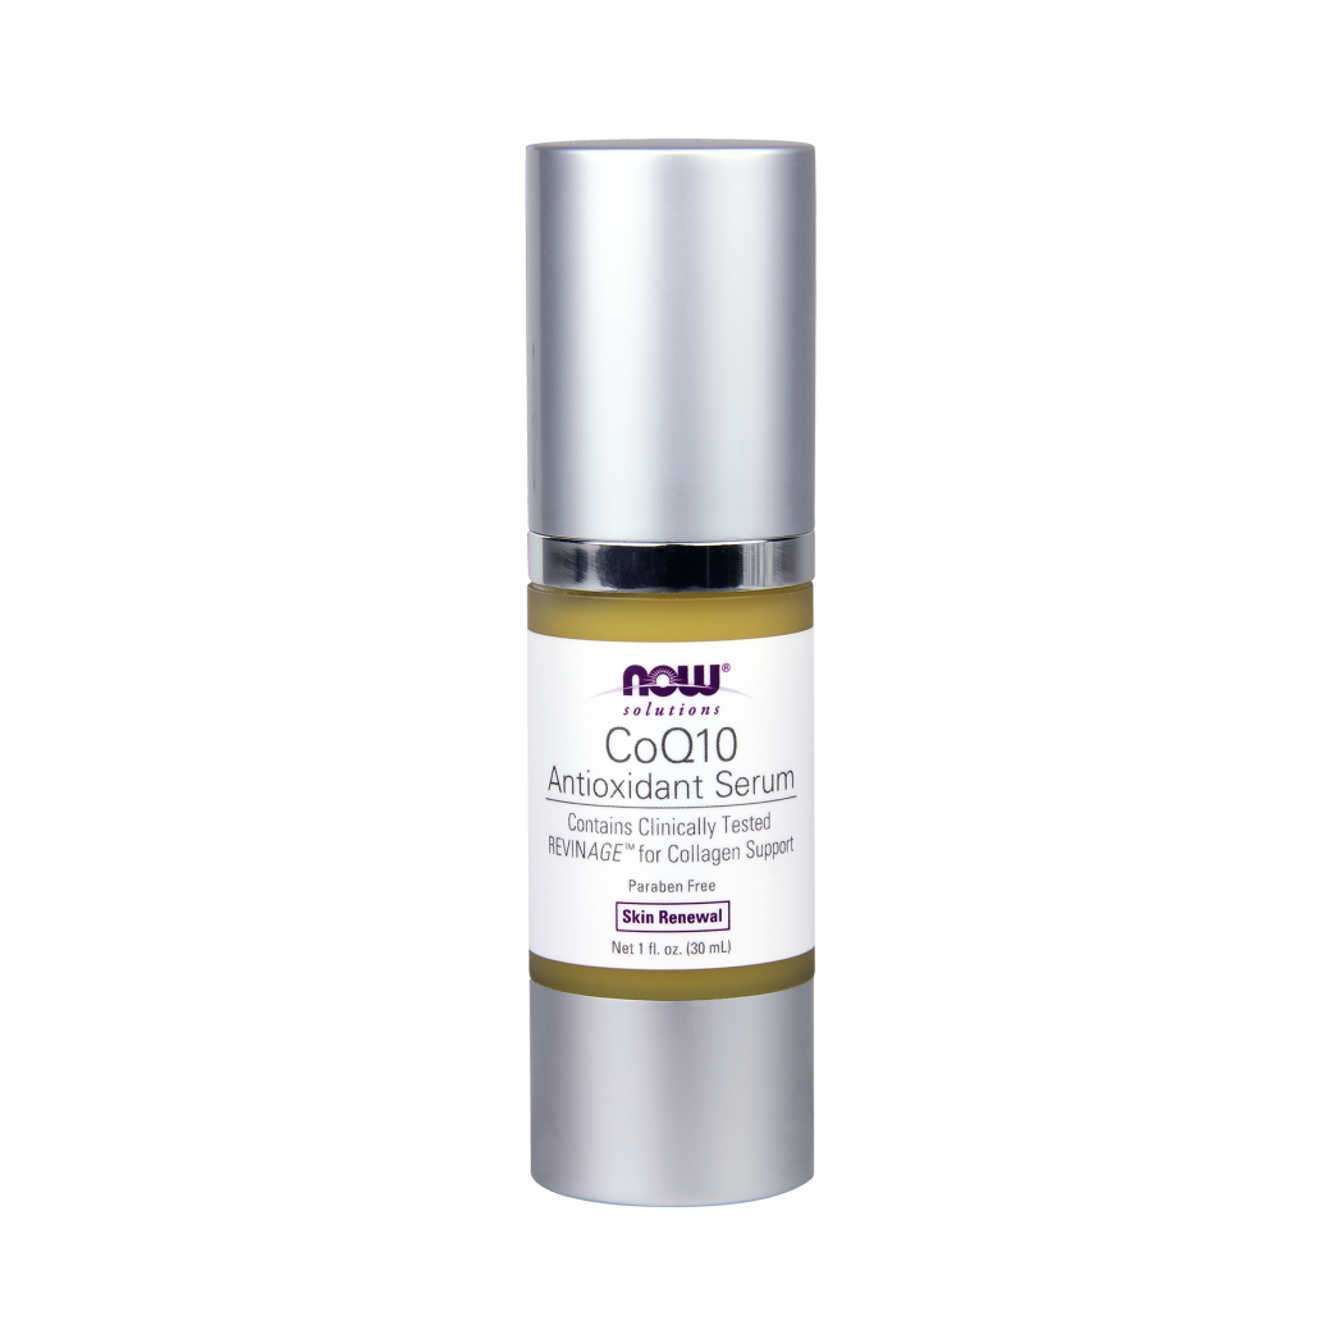 CO-Q10 ANTIOXIDANT SERUM SKIN RENEWAL - 30ml